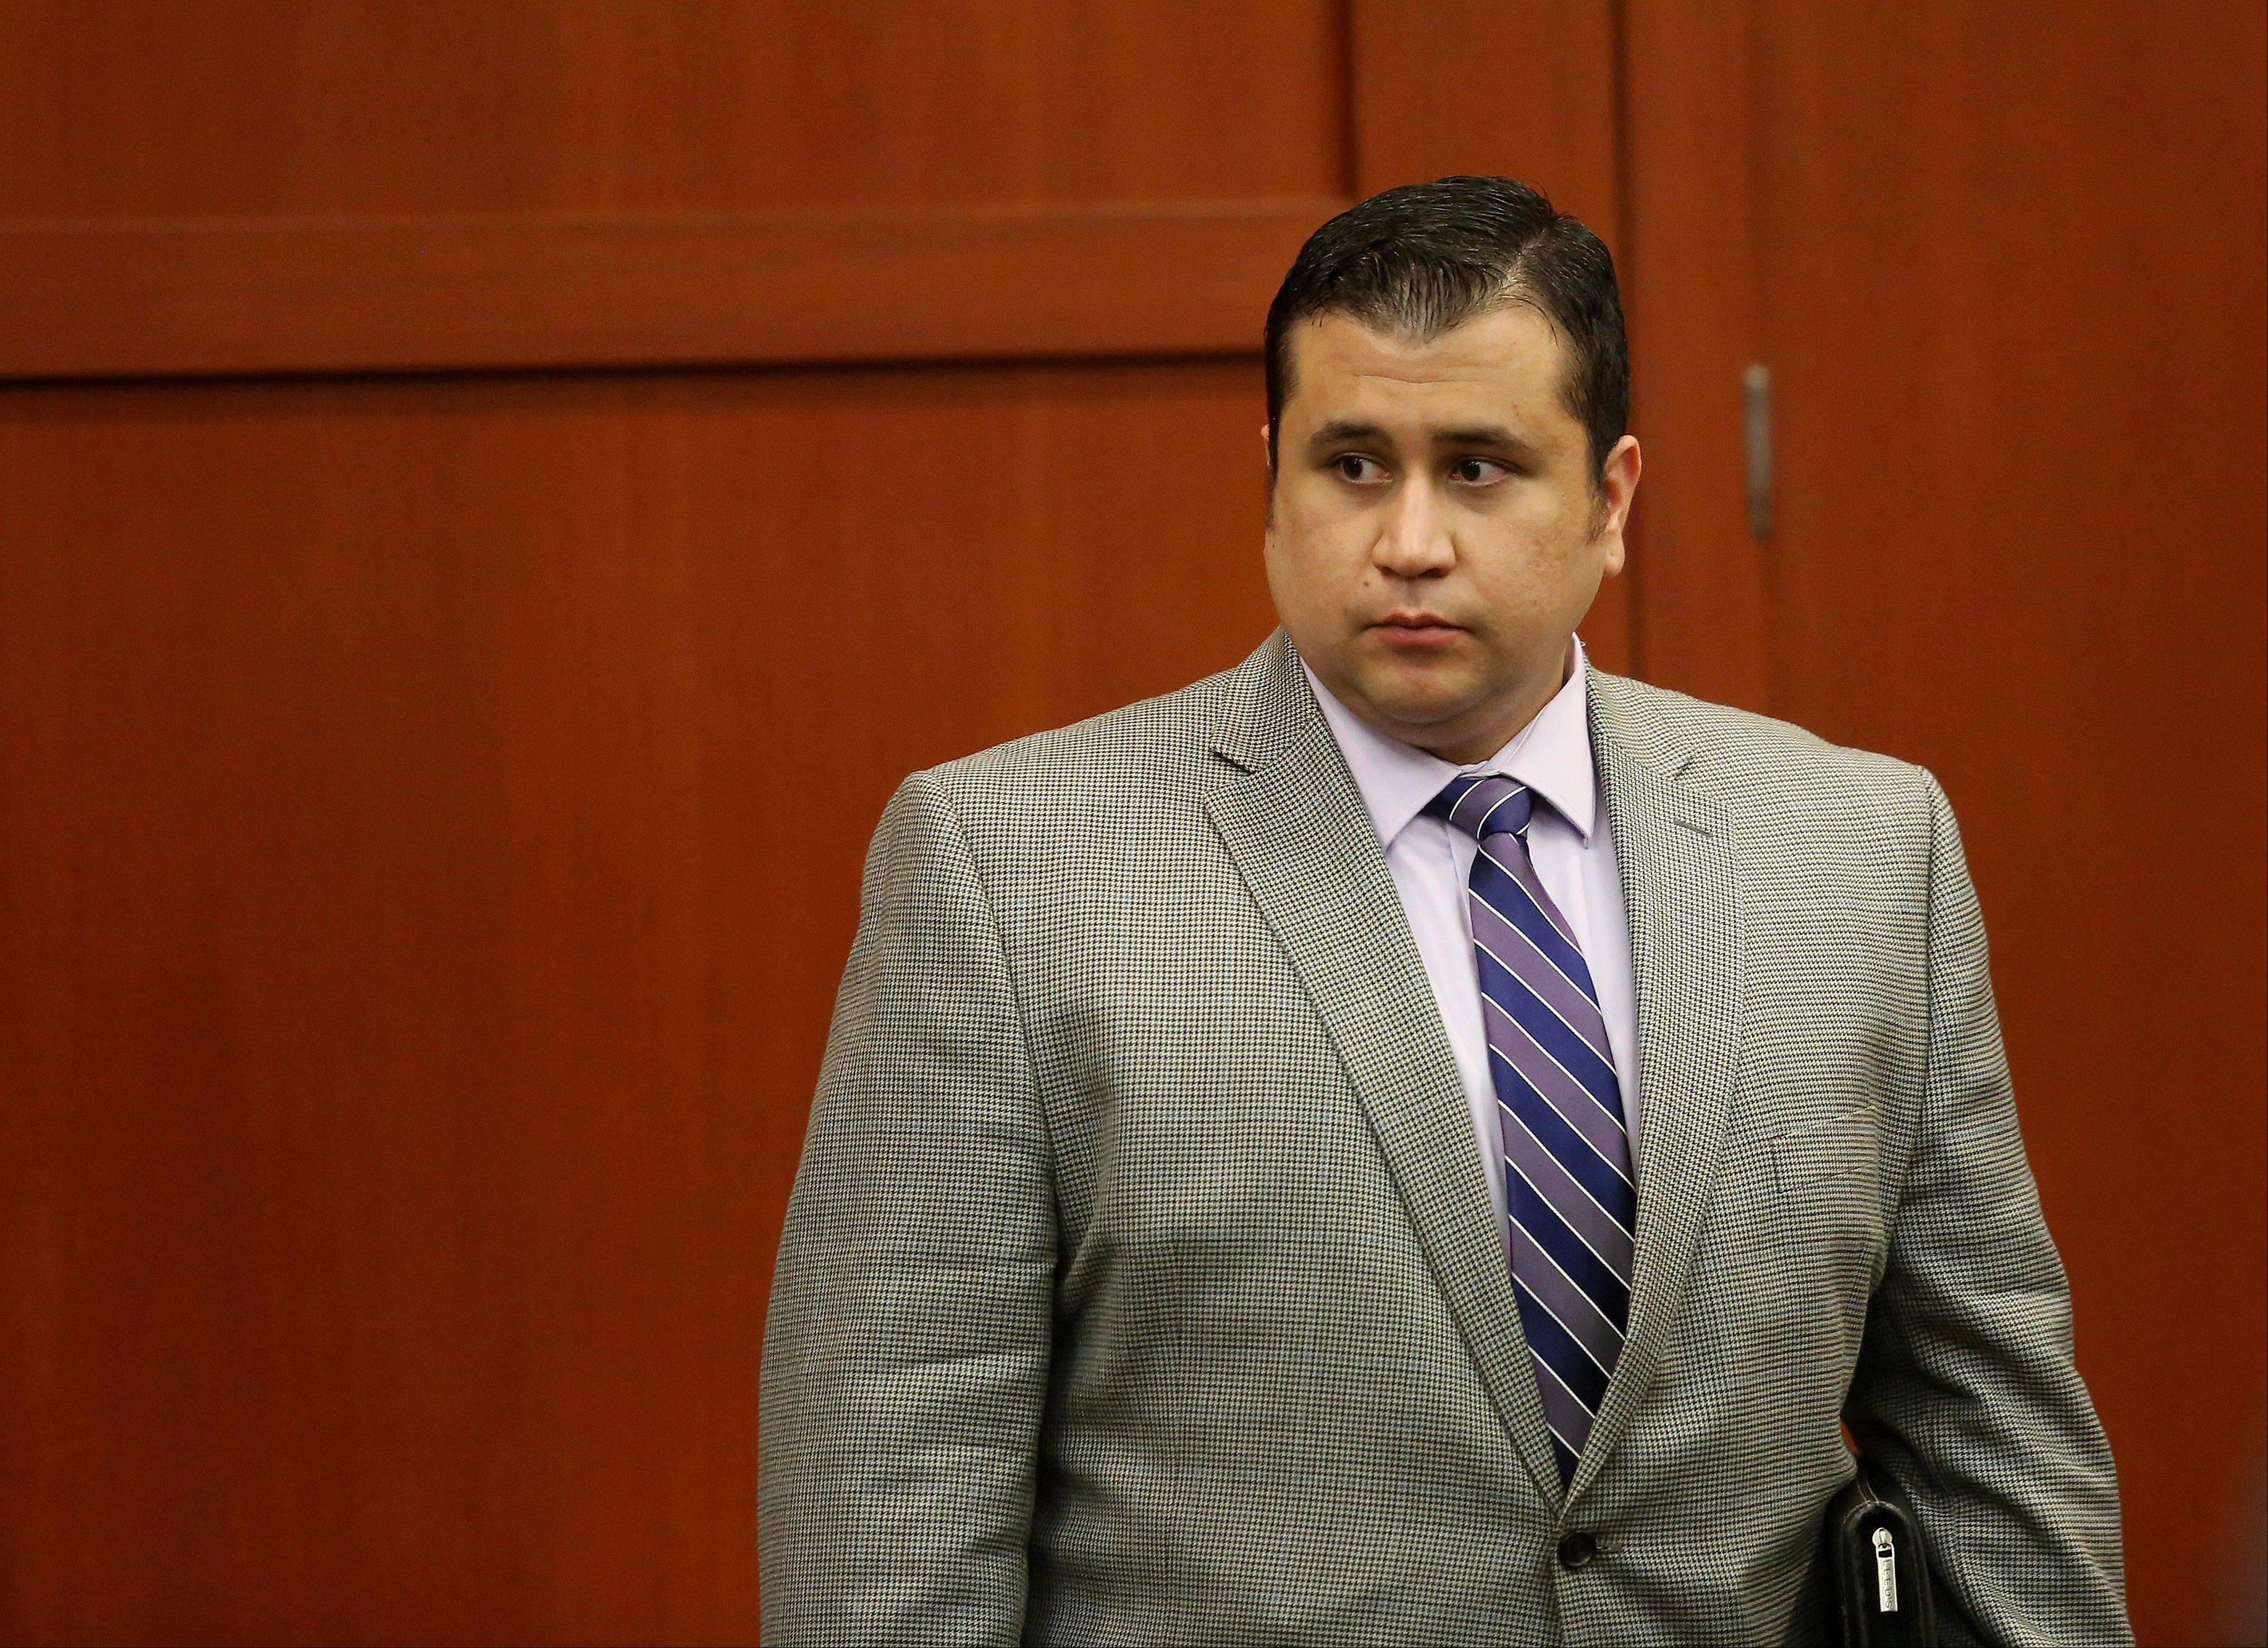 George Zimmerman leaves the courtroom for the day in his trial in Seminole circuit court in Sanford, Fla. on Thursday, June 27, 2013. Zimmerman has been charged with second-degree murder for the 2012 shooting death of Trayvon Martin.